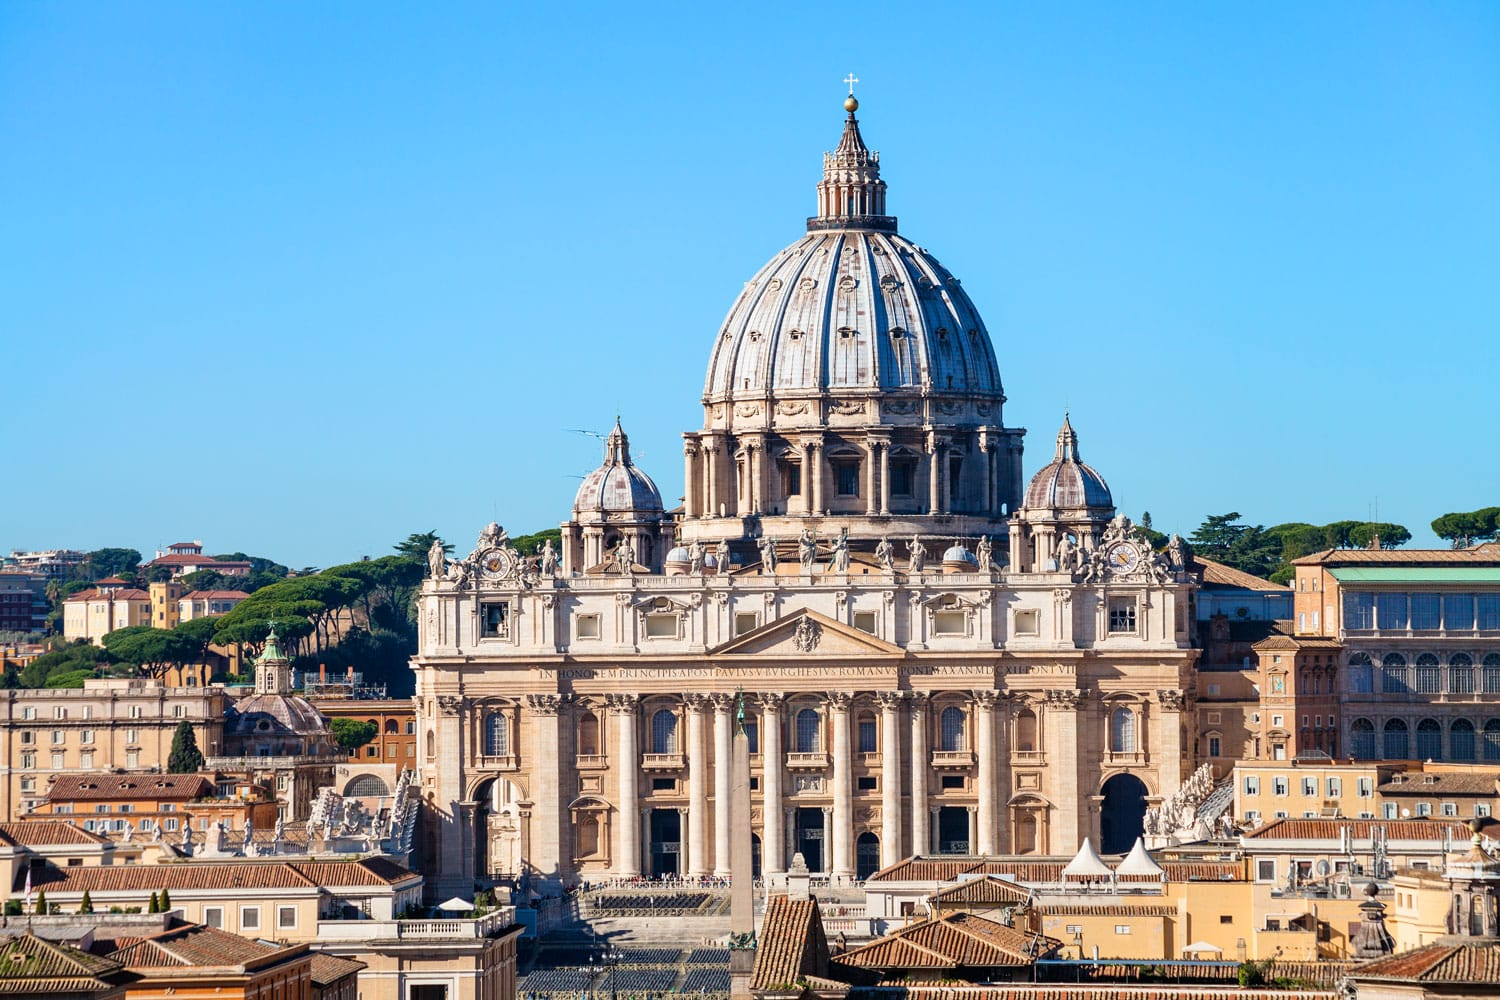 View of the St Peters Basilica in Vatican City from the Castle of Holy Angel